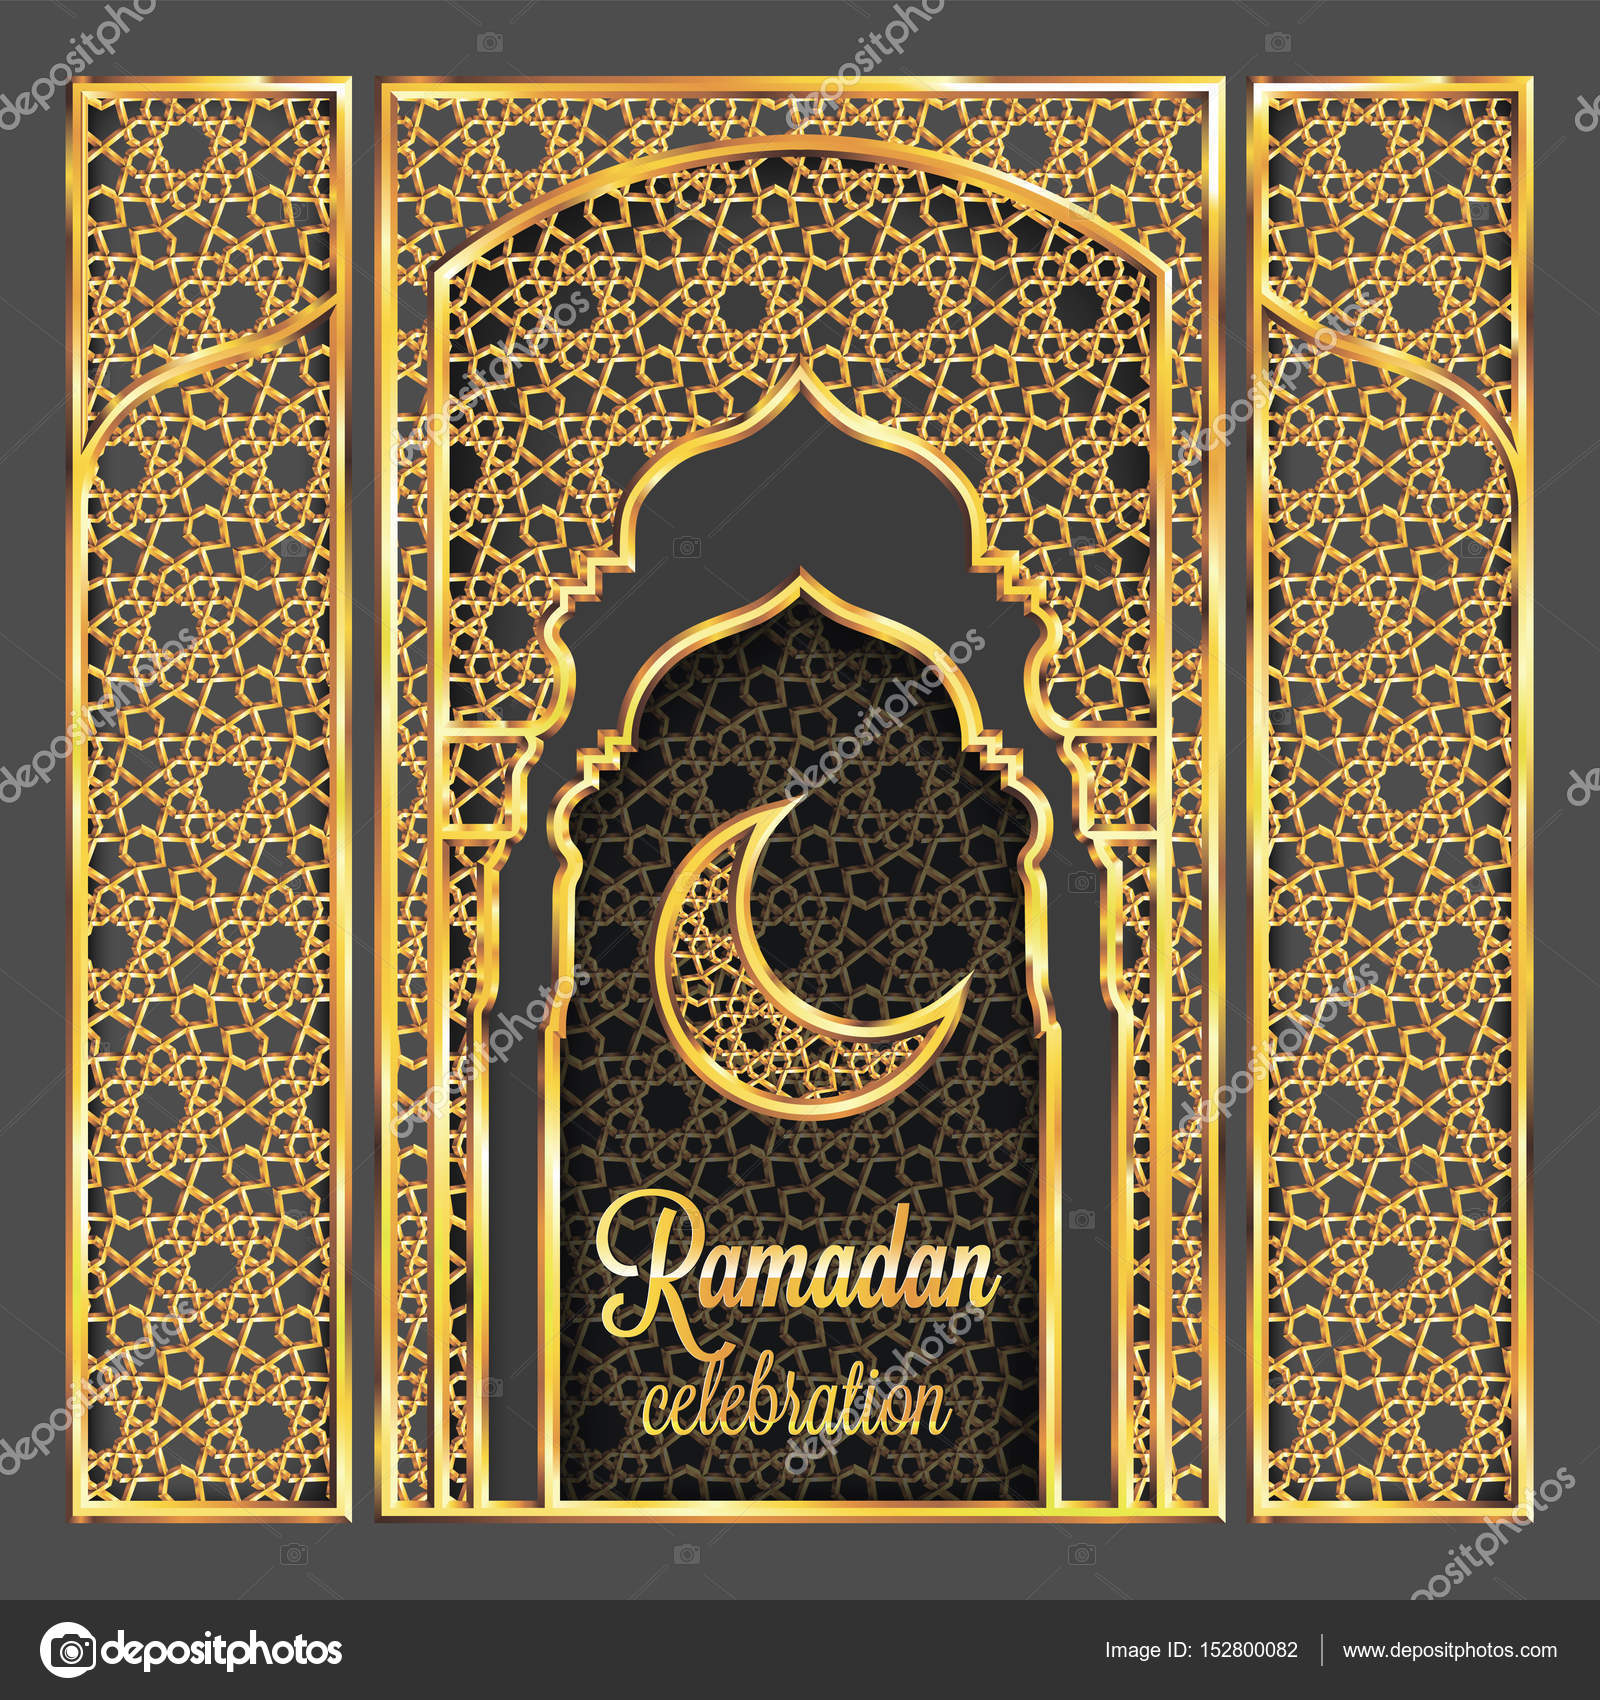 Ramadan kareem greeting card with traditional islamic pattern ramadan kareem greeting card with traditional islamic pattern invitation or brochure in eastern style m4hsunfo